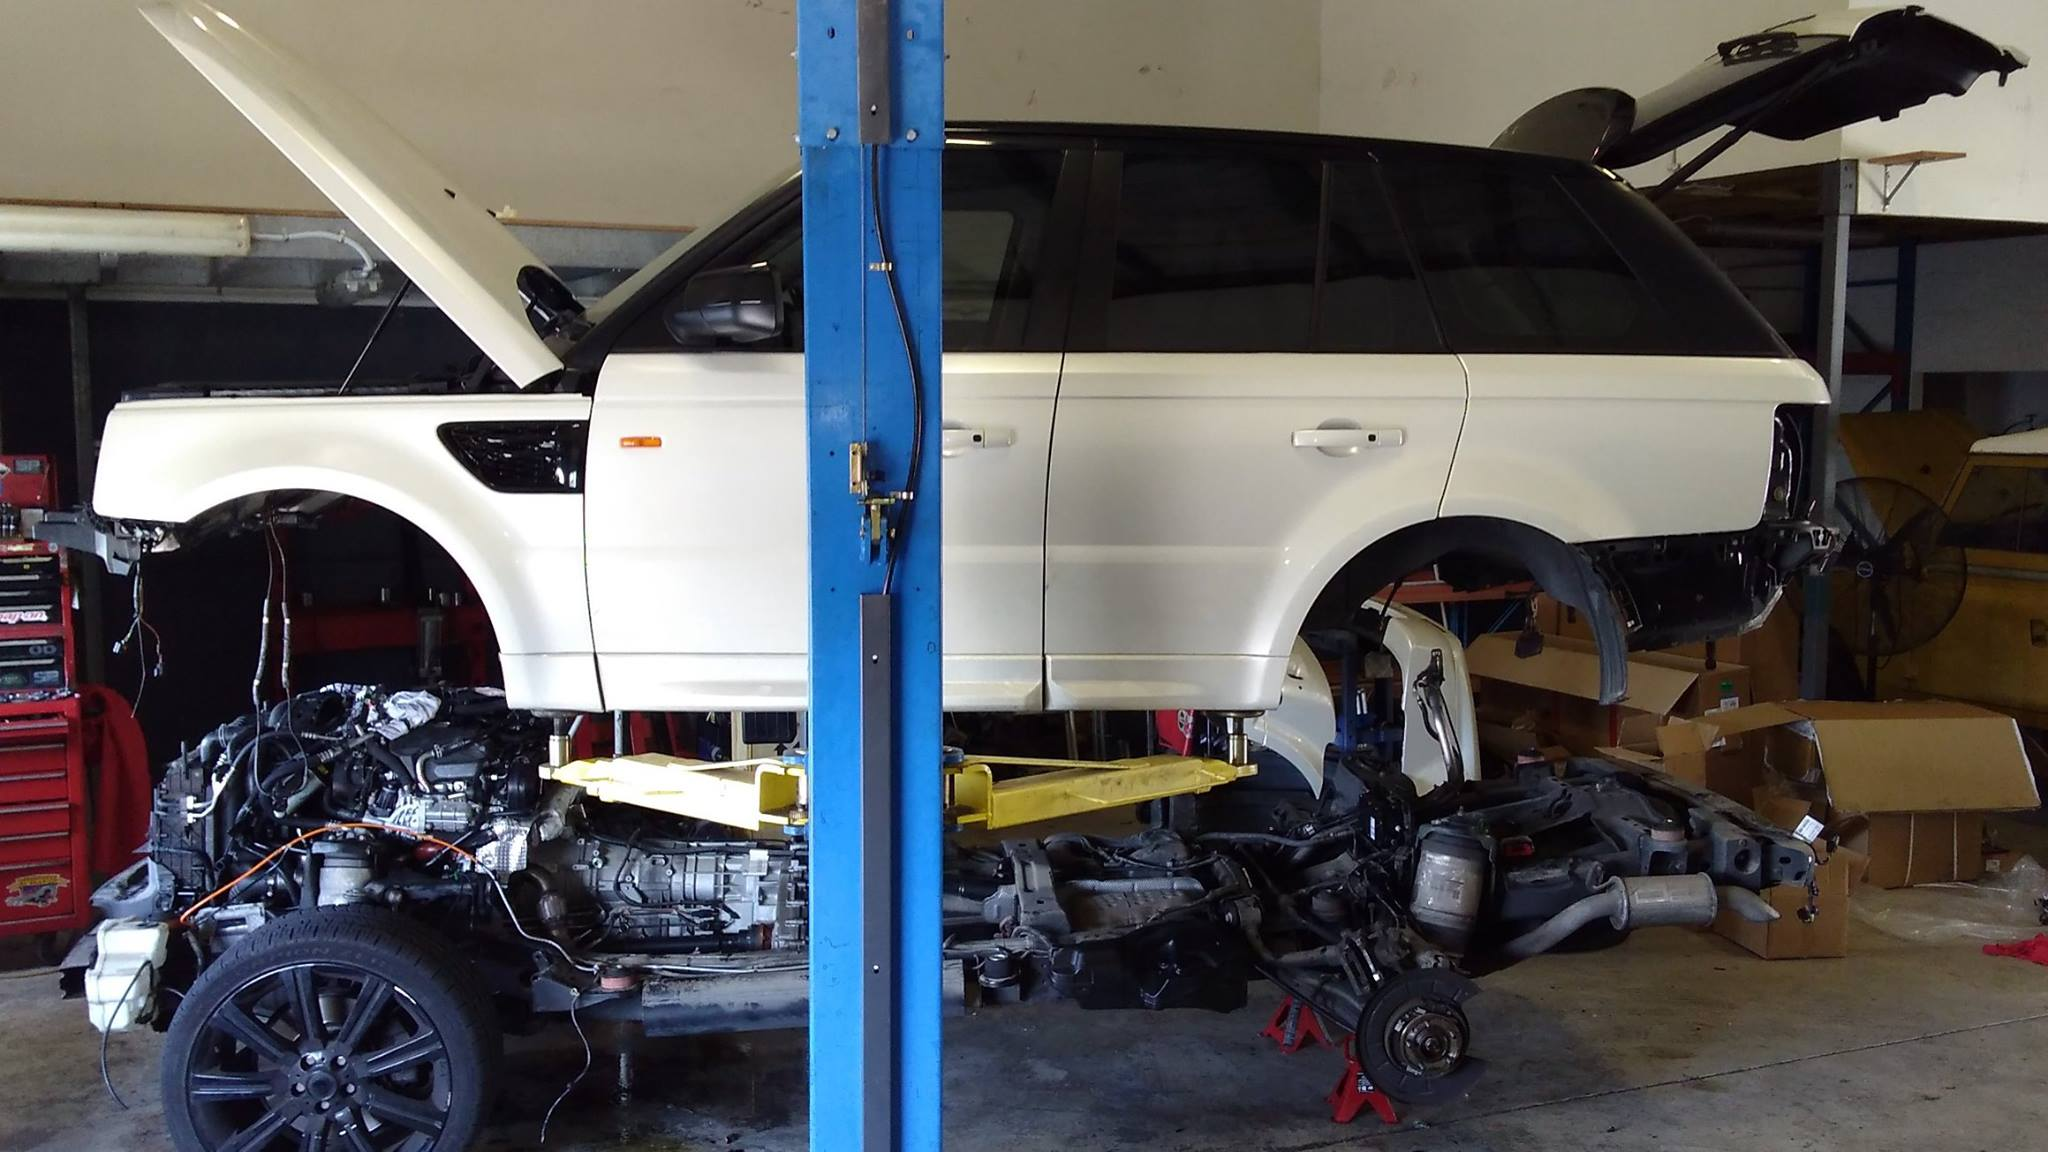 Independent Land Rover Specialist Professional Service - Range rover repair shop